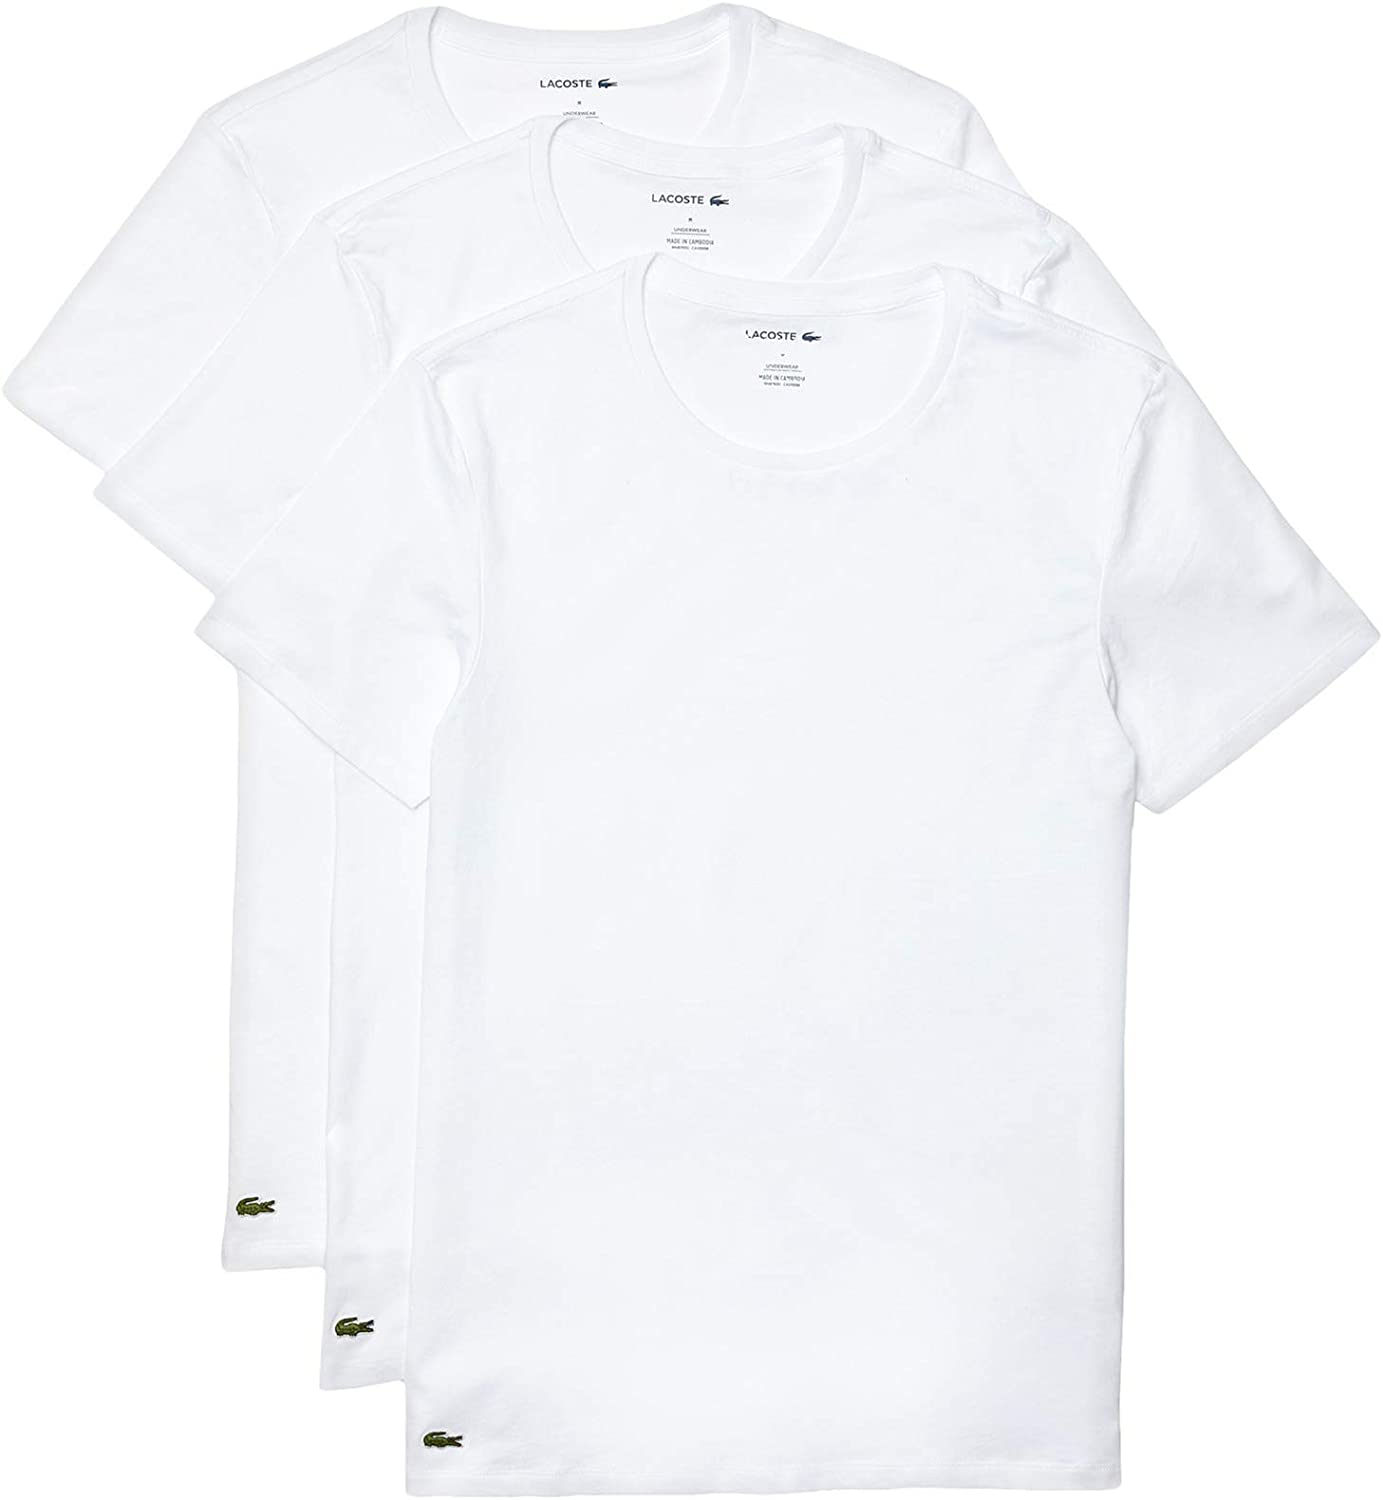 Lacoste Men's Essentials 3 Pack 100% Cotton Slim Fit Crew Neck T-Shirts